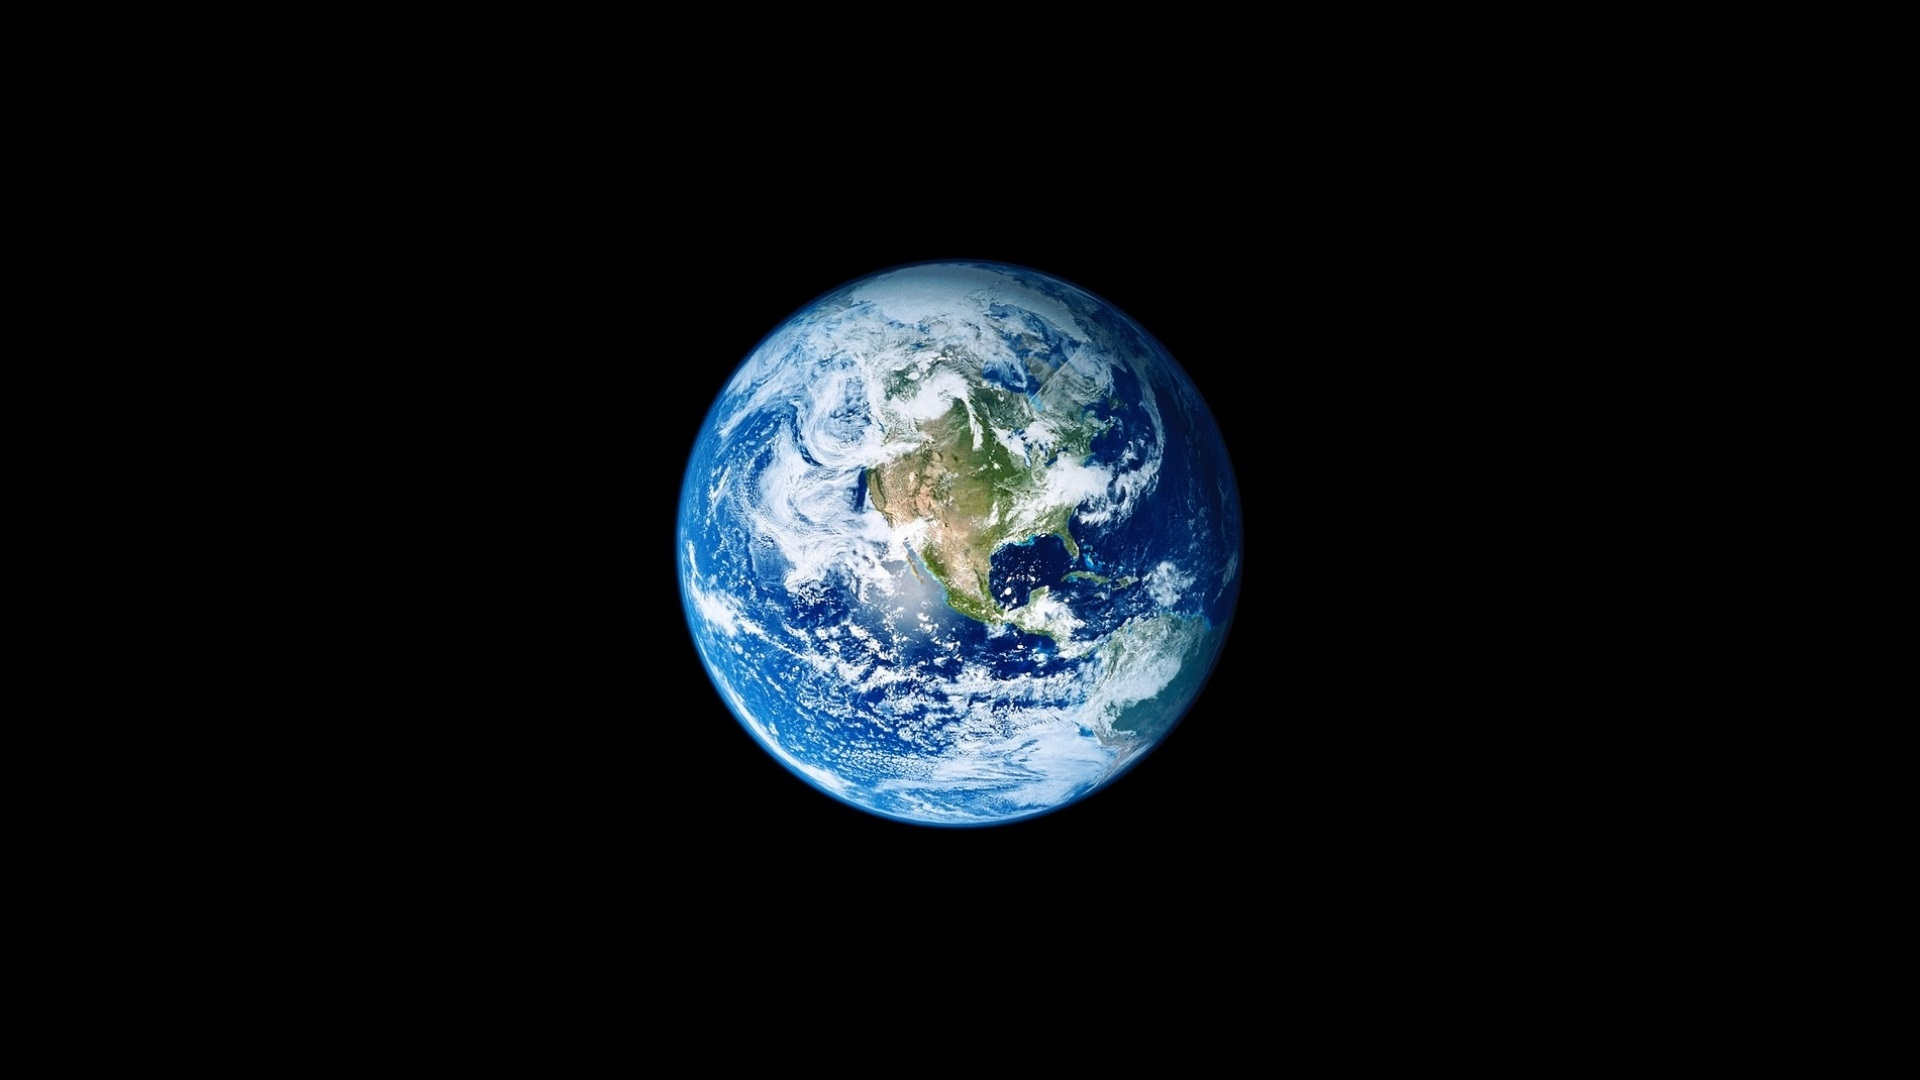 Earth Day Featured Photo: Picture on Earth from space on a black background